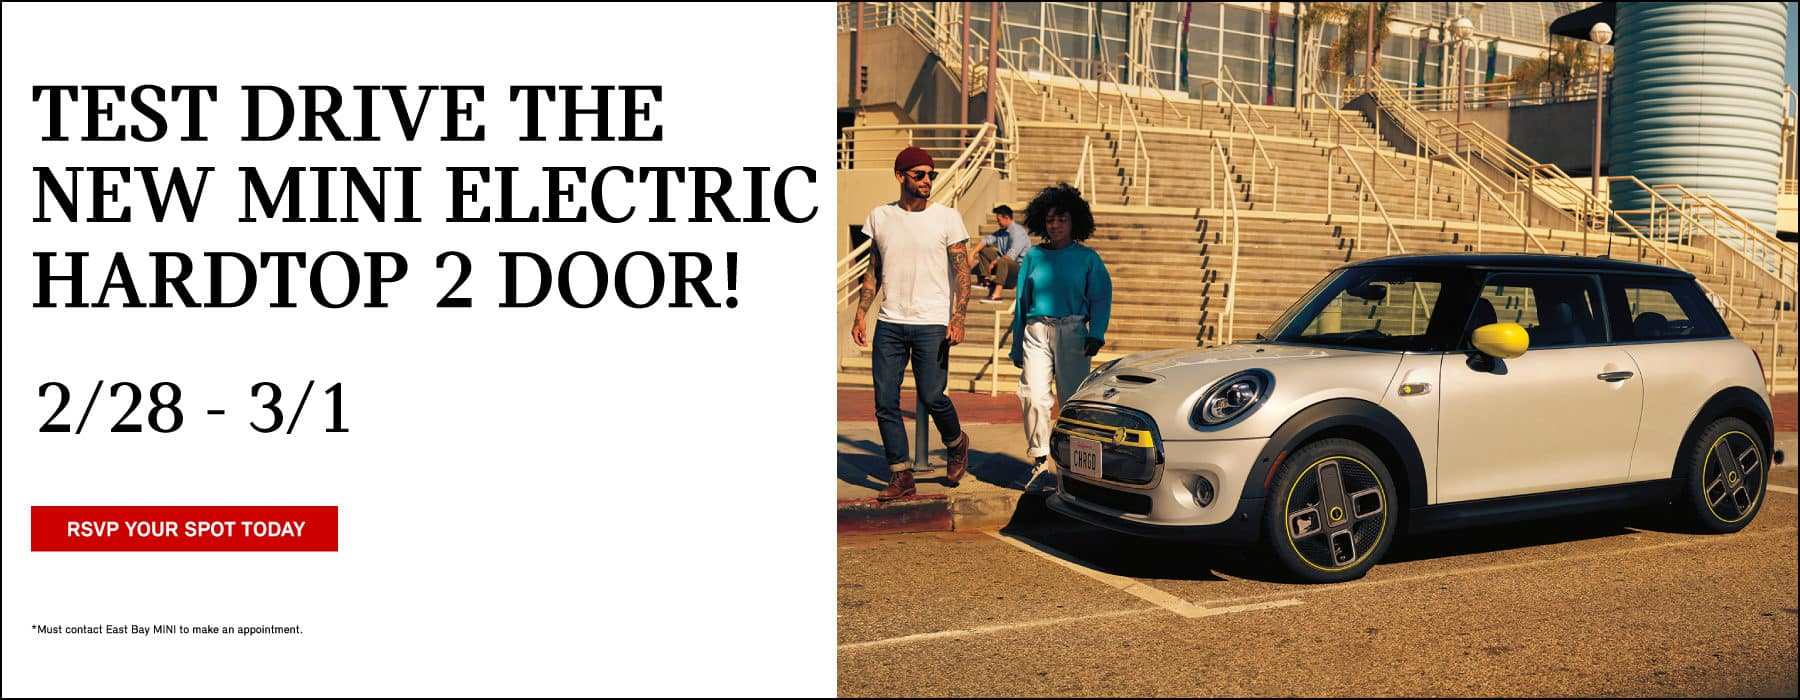 Test drive the new MINI electric hardtop 2 door. February 28 - March 1st. MINI Electric parked on road.